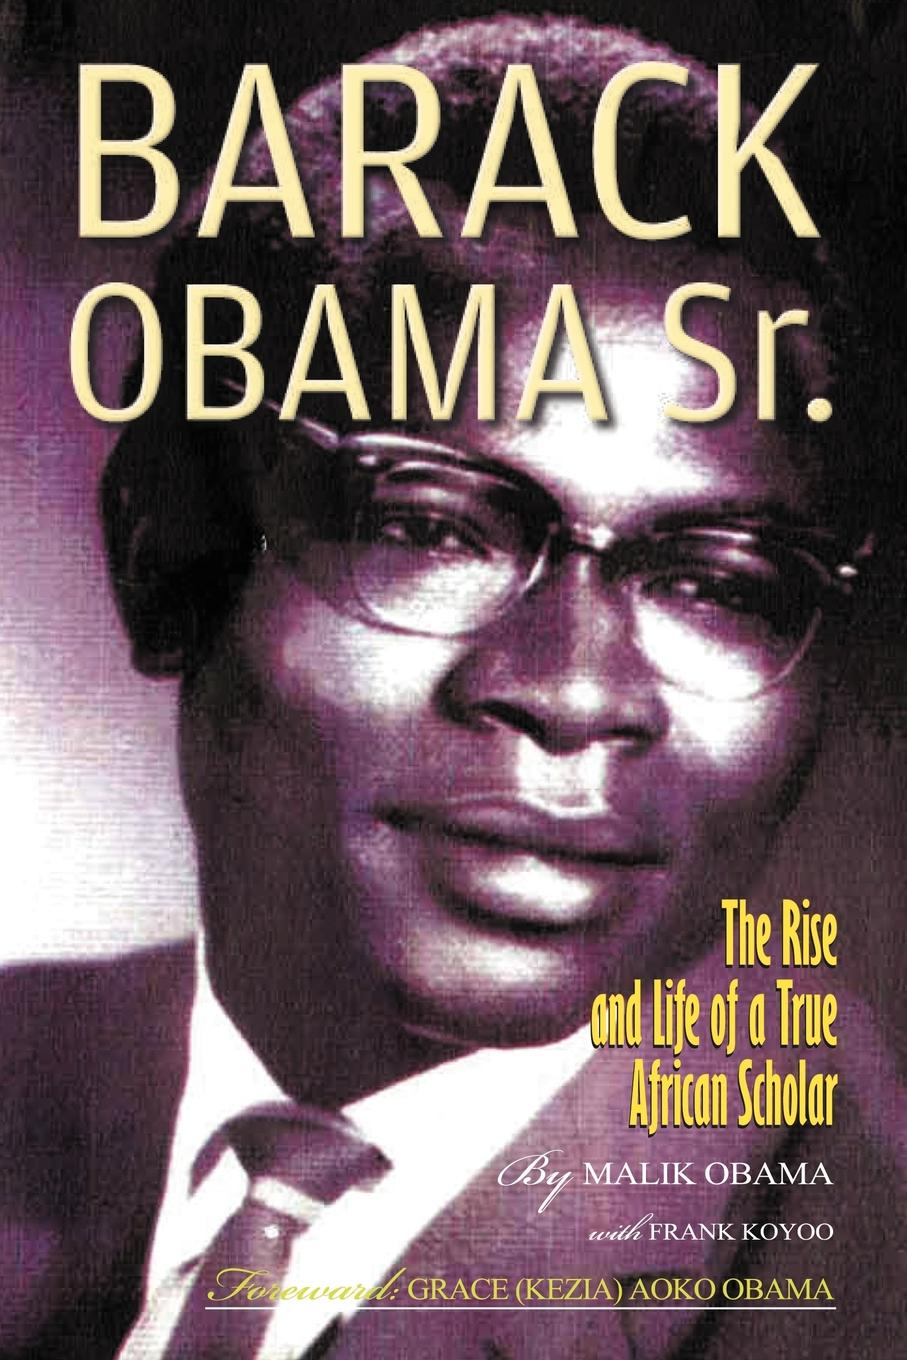 Abon'go Malik Obama, Frank Koyoo Barack Obama Sr. The Rise and Life of a True African Scholar barack obama the wit and wisdom of barack obama a book of quotations